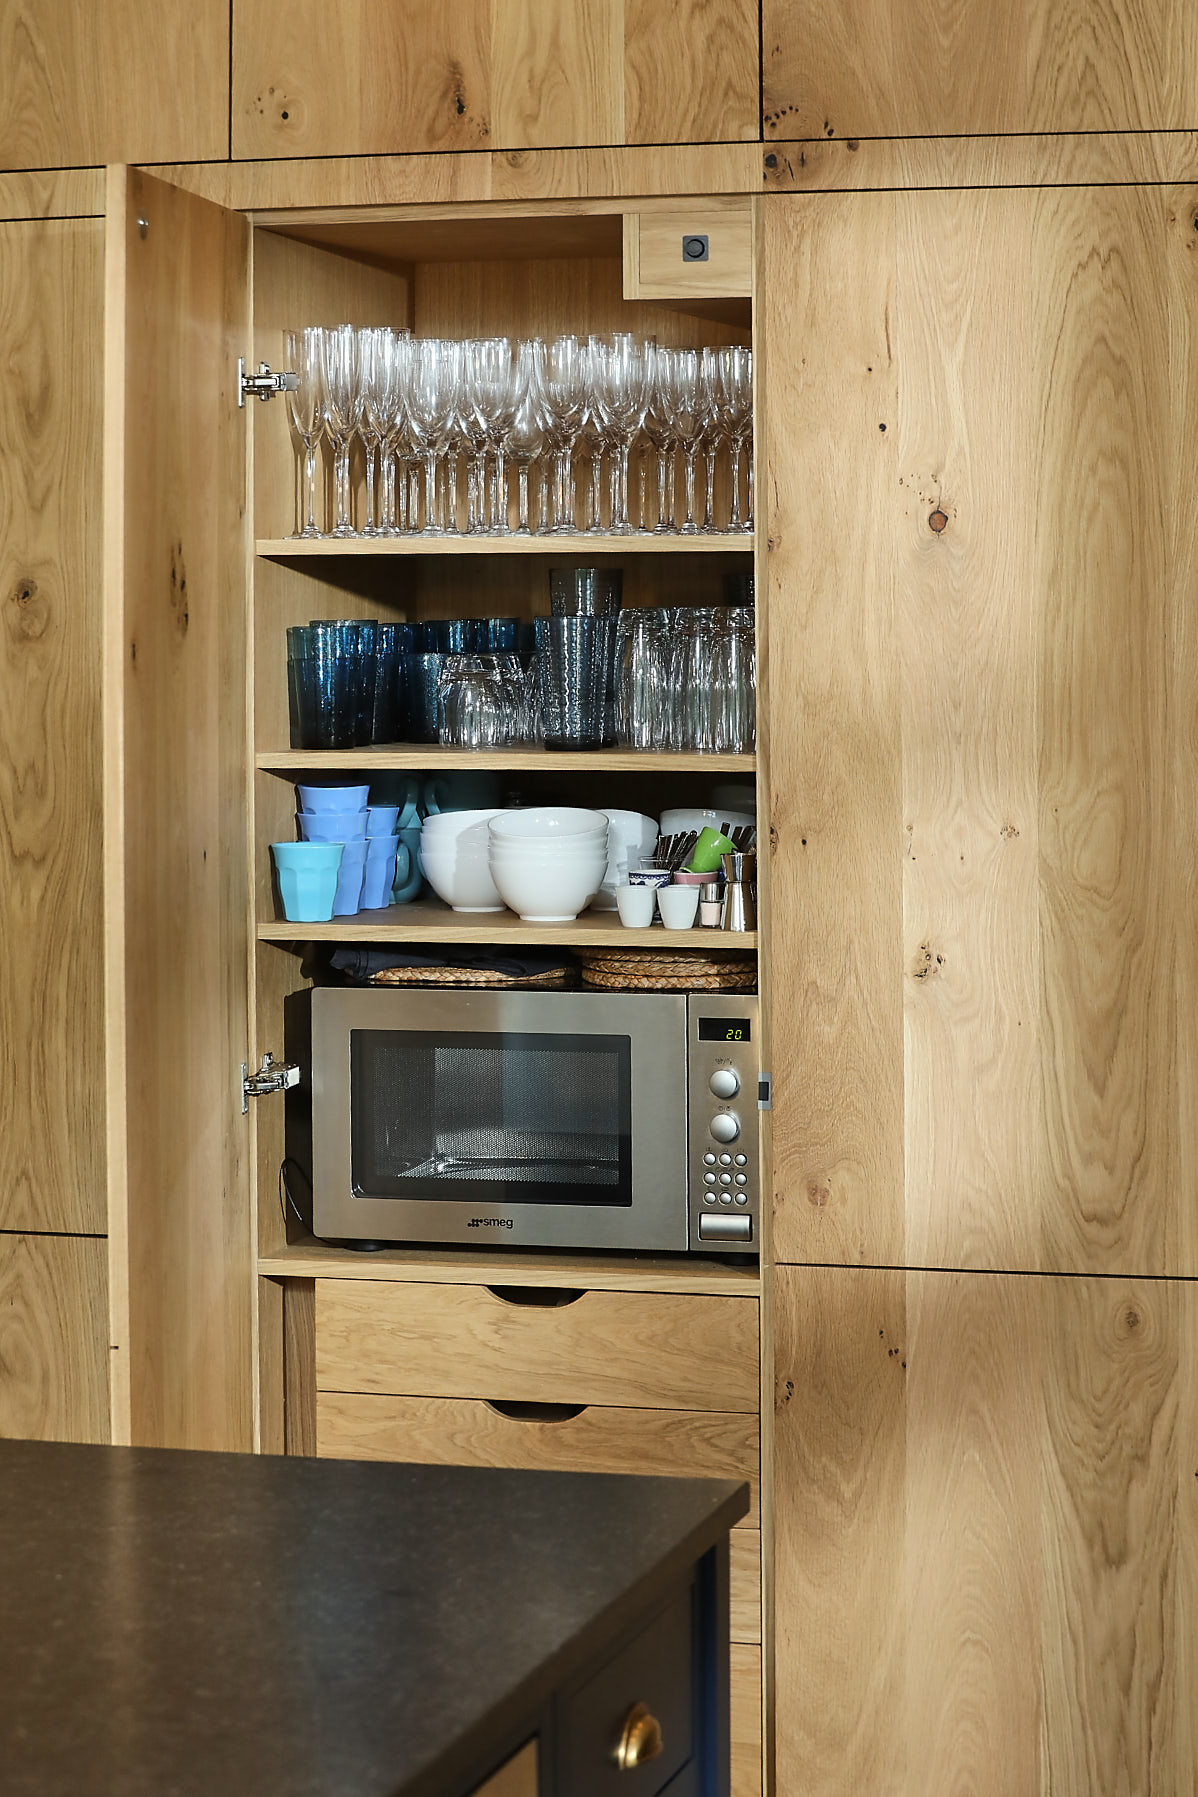 Glasses and microwave stored in tall oak kitchen cabinets